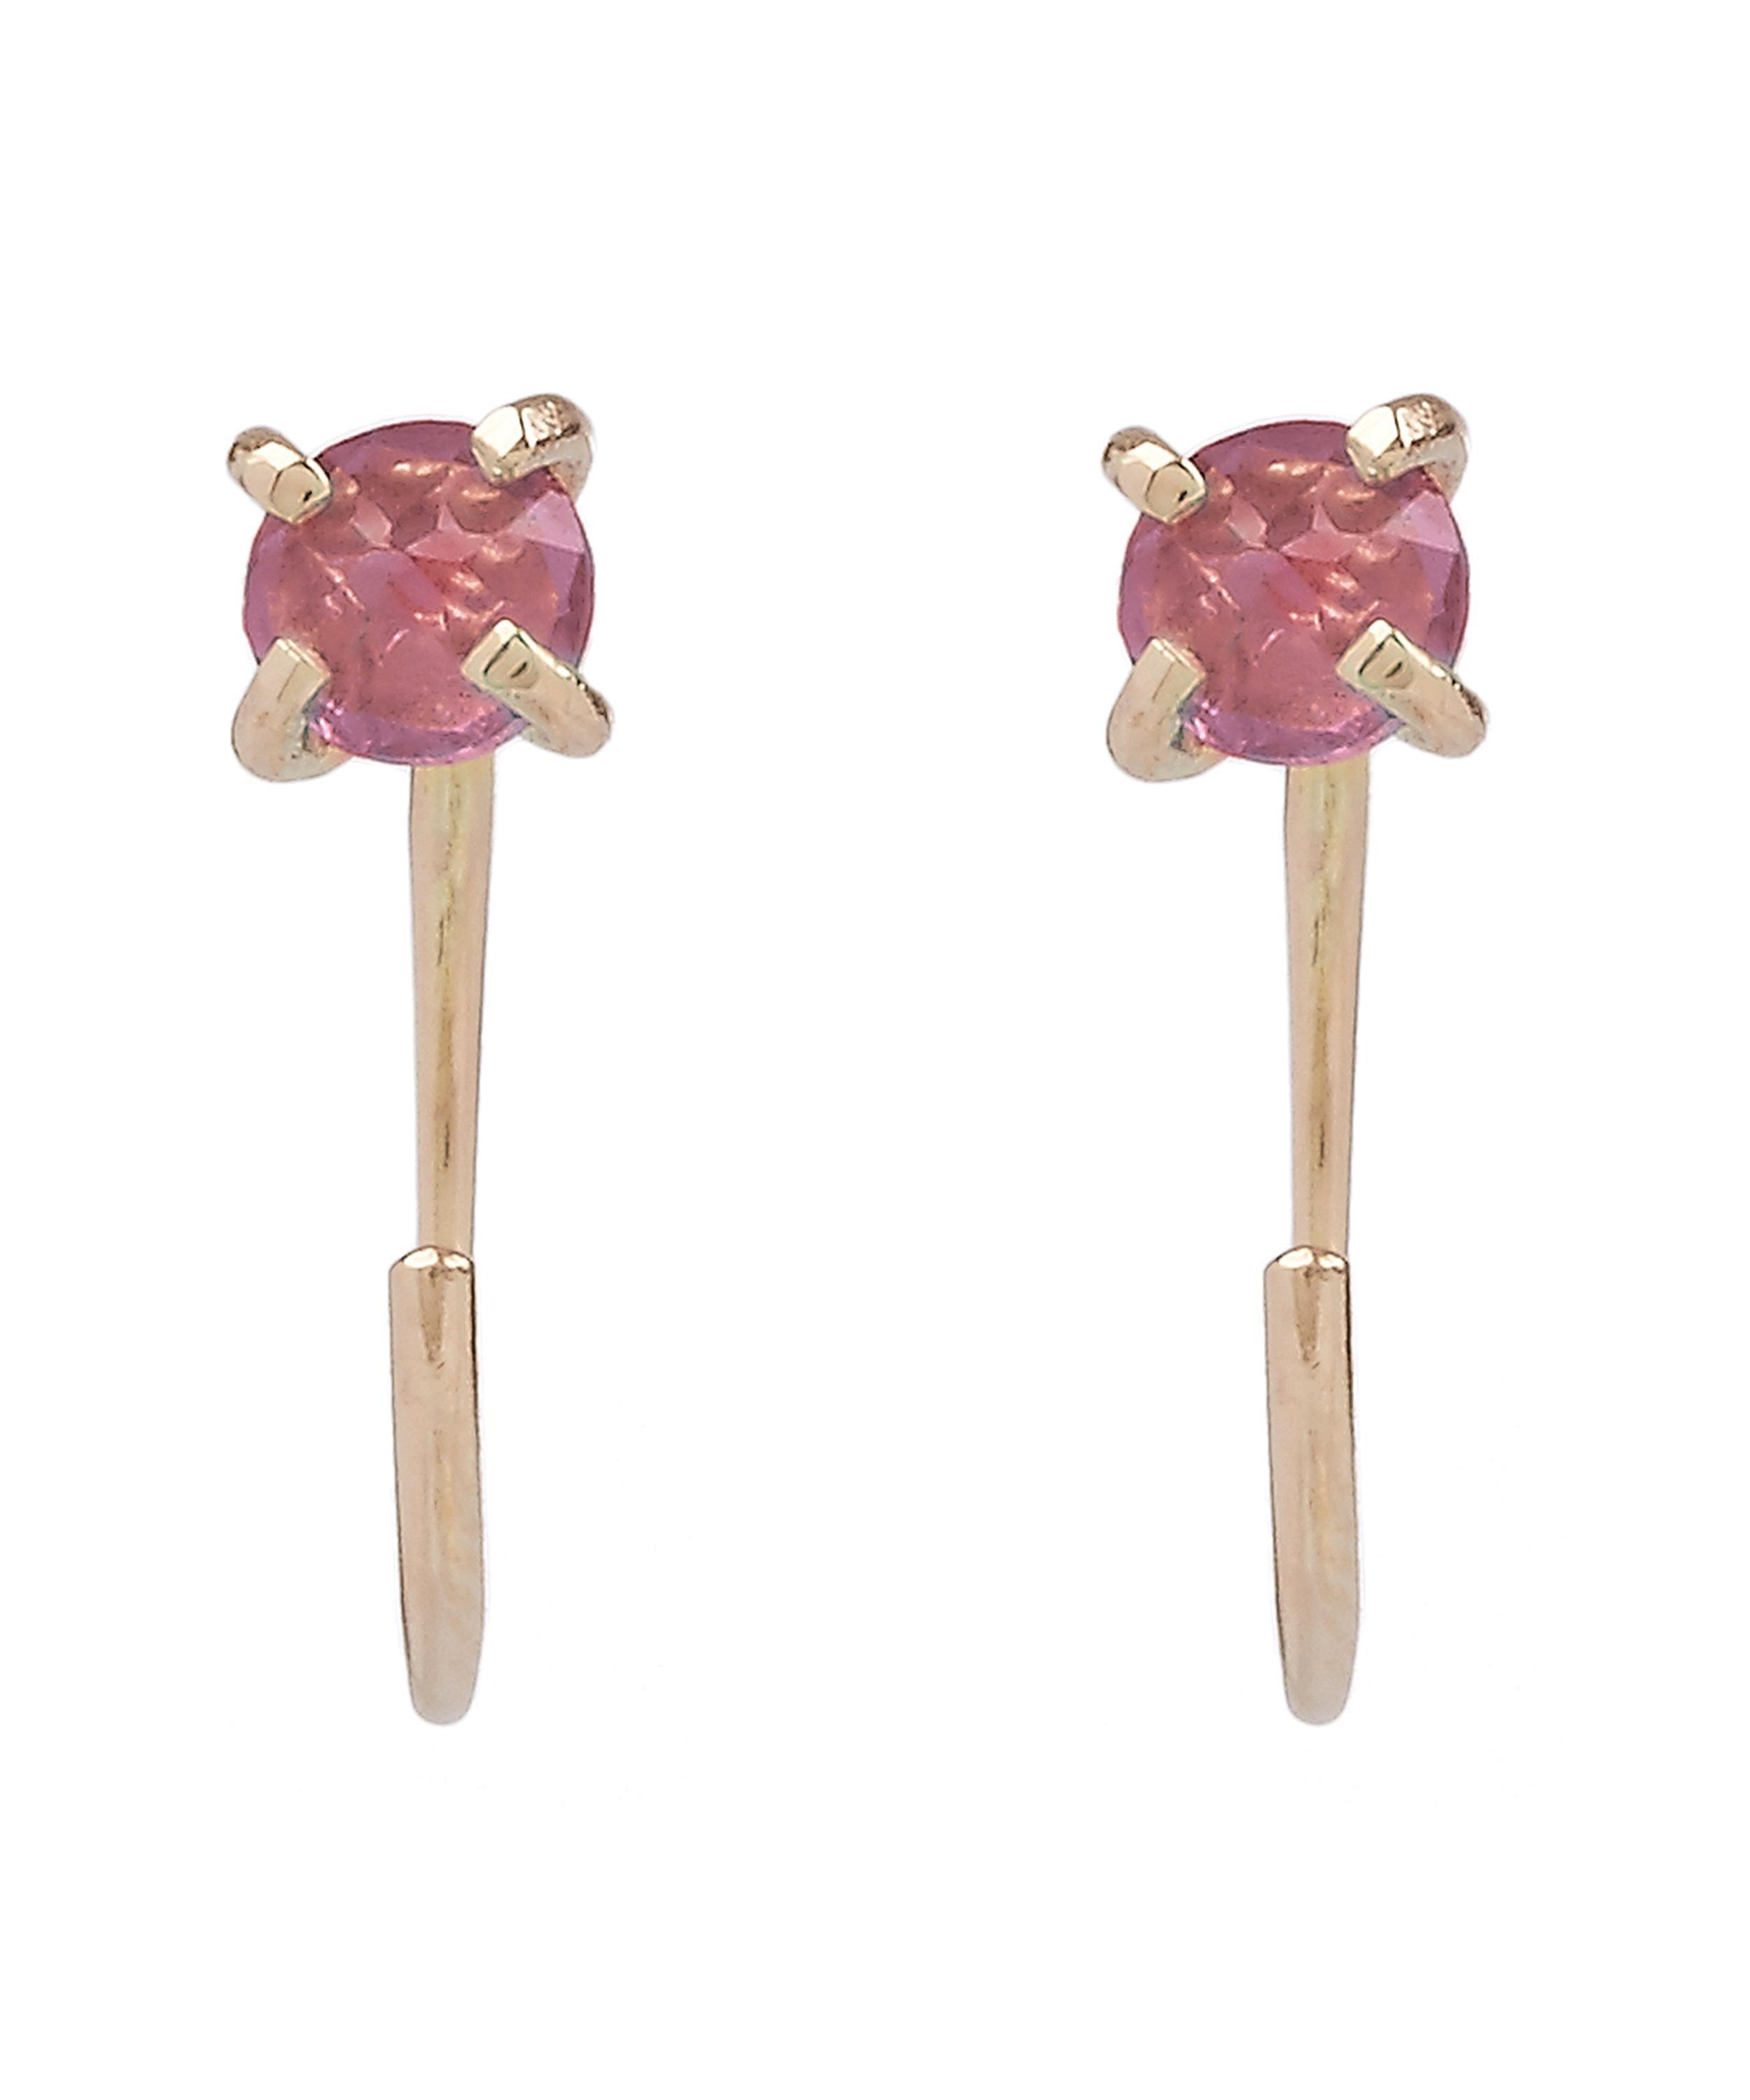 garnered shop garnet rhodolite gold earrrings lens carat handmade mosseri abby product jewellery the earrings